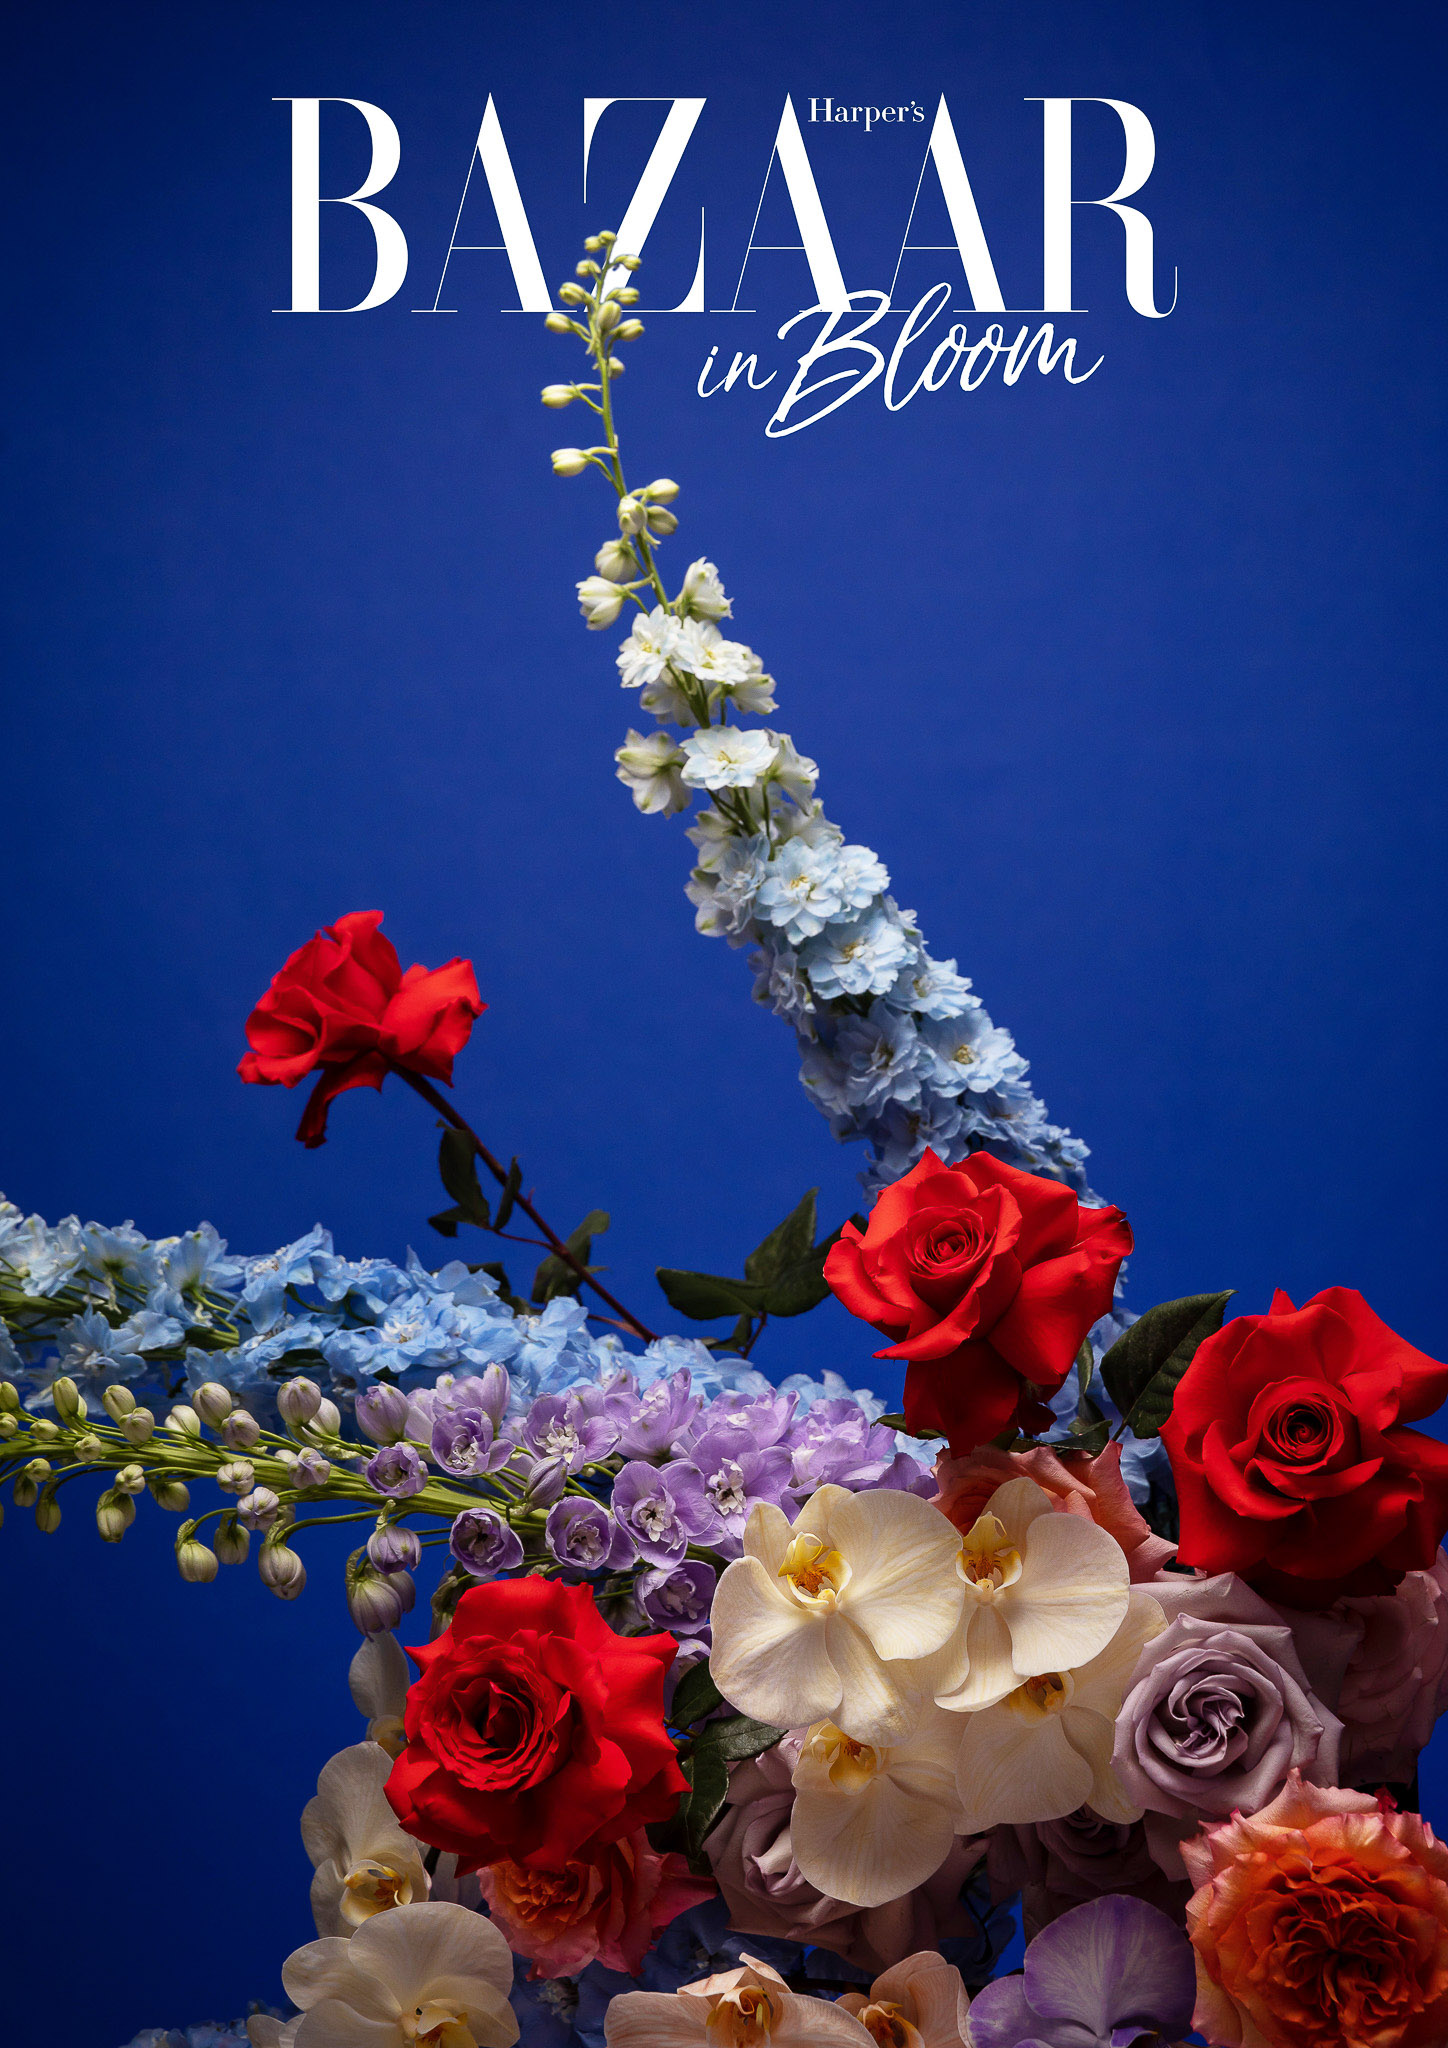 Harpers Bazaar in Bloom